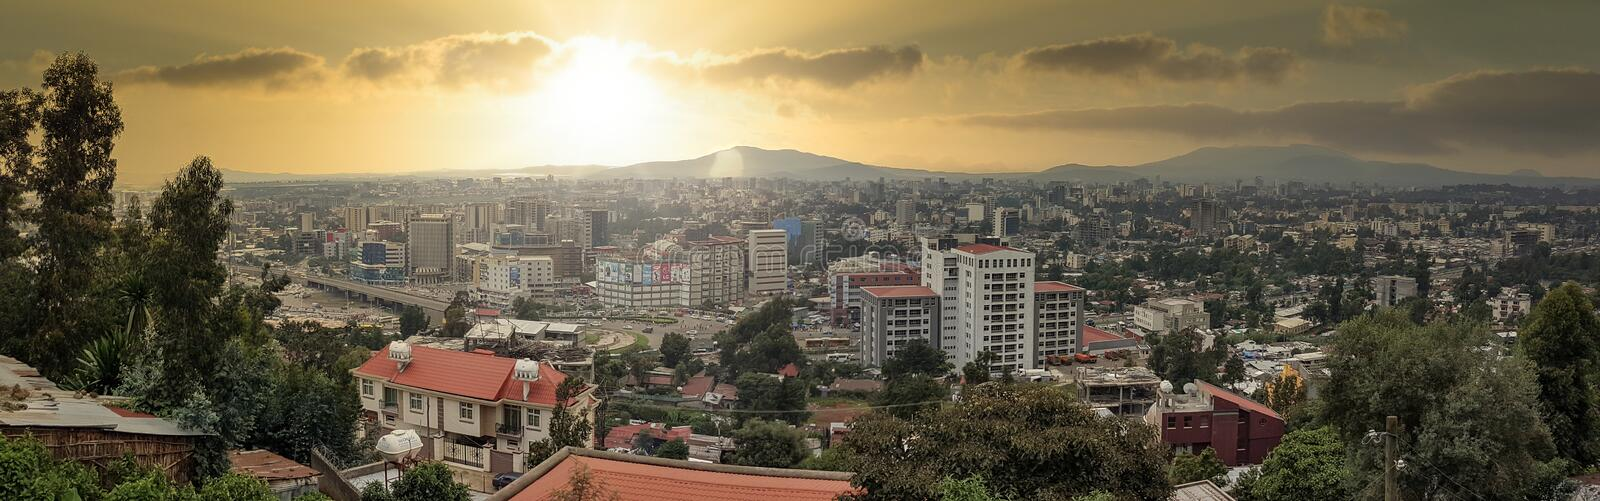 Panorama of the Capital City of Ethiopia, Addis Ababa stock photography